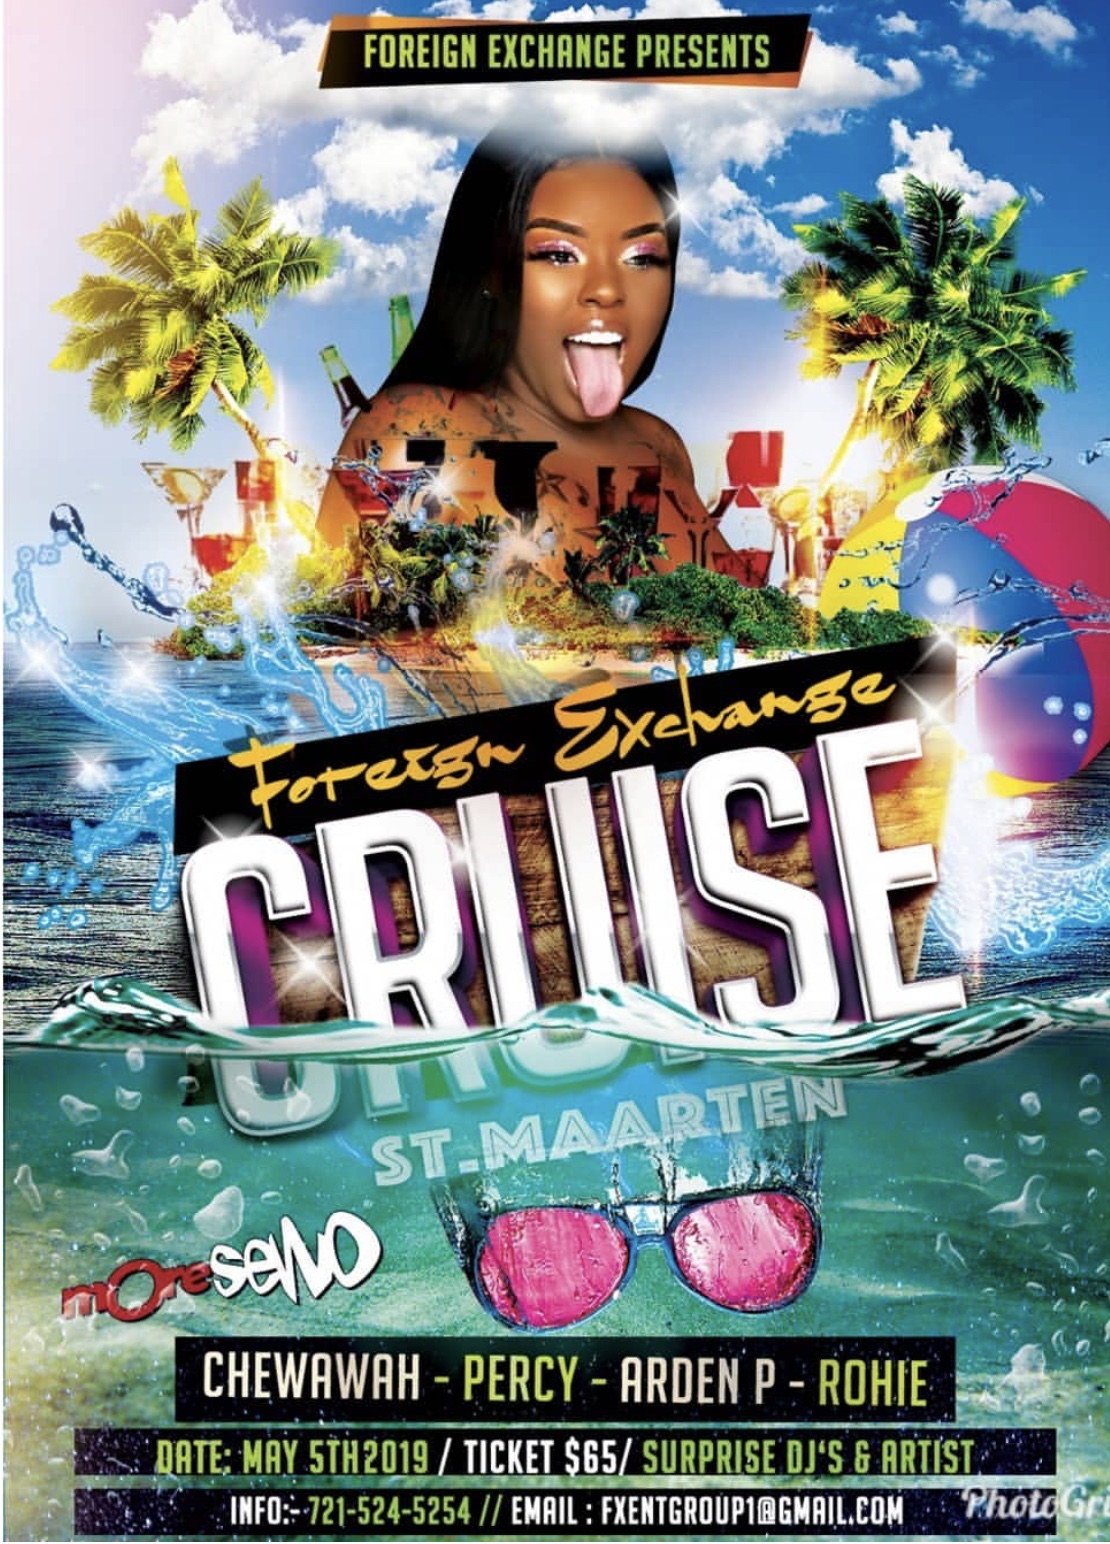 Foreign Exchange All-Inclusive Boat Cruise